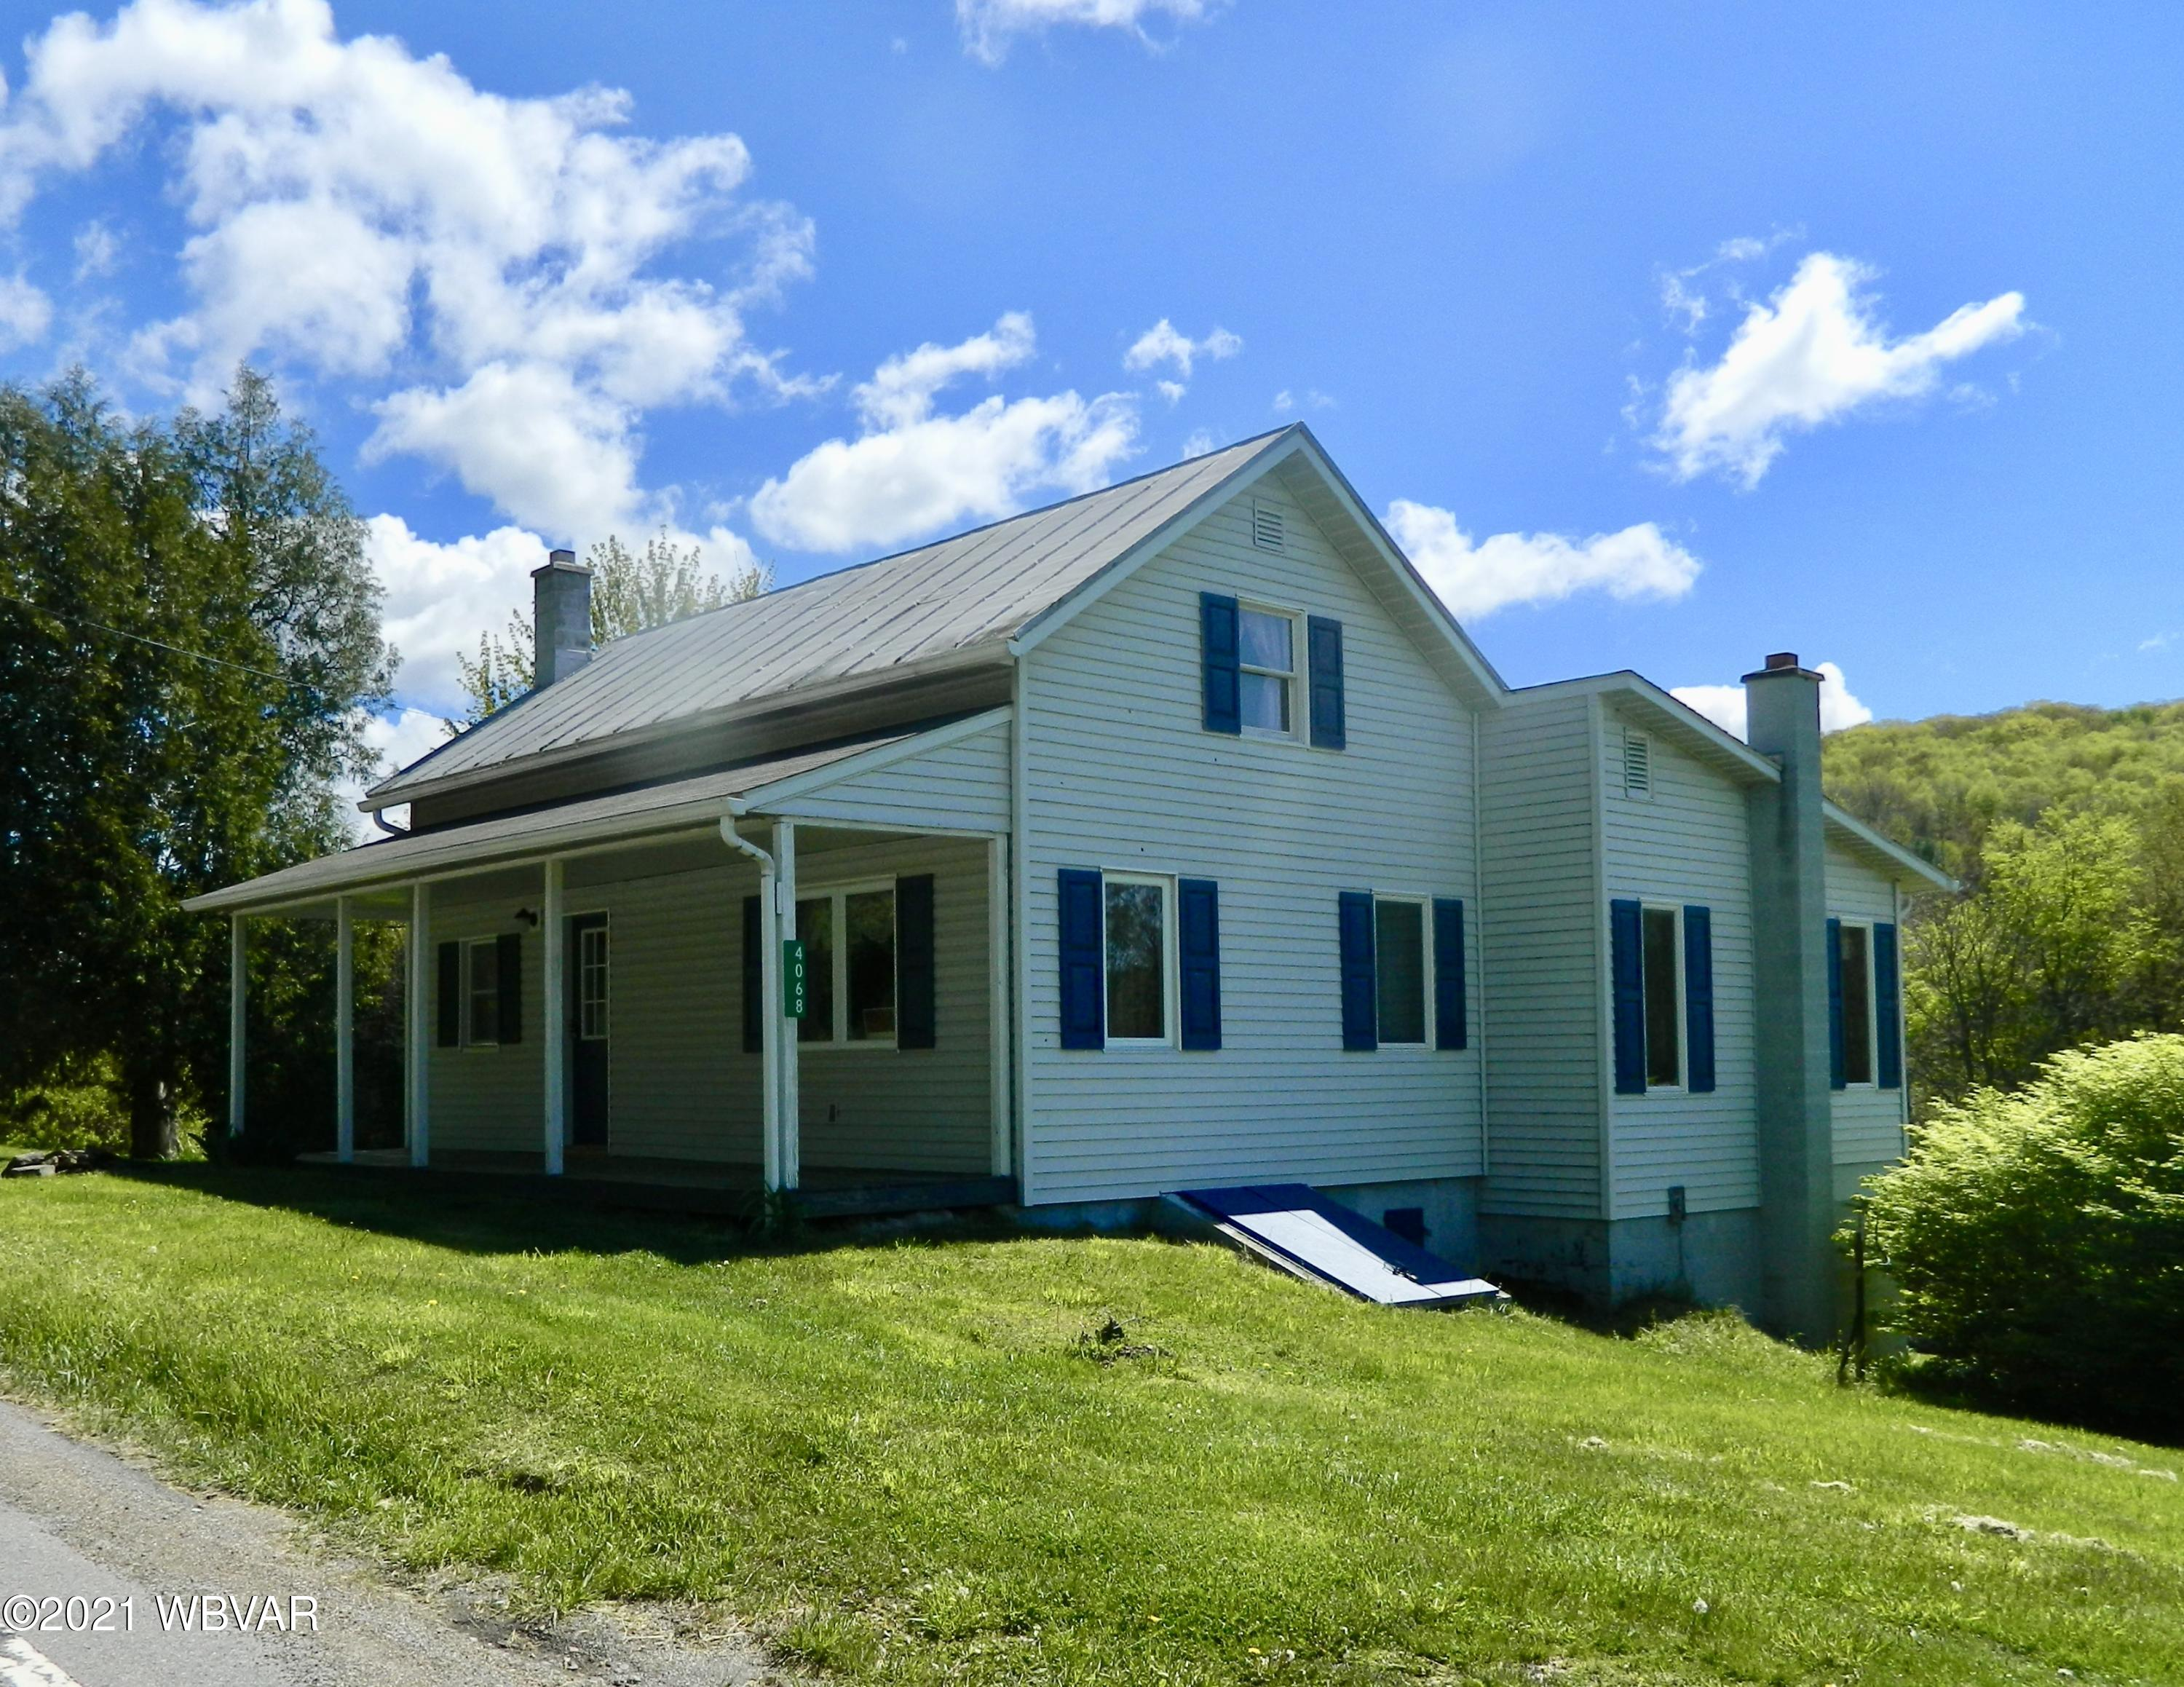 4068 PA-42 HIGHWAY, Unityville, PA 17774, 3 Bedrooms Bedrooms, ,1 BathroomBathrooms,Farm,For sale,PA-42,WB-92542